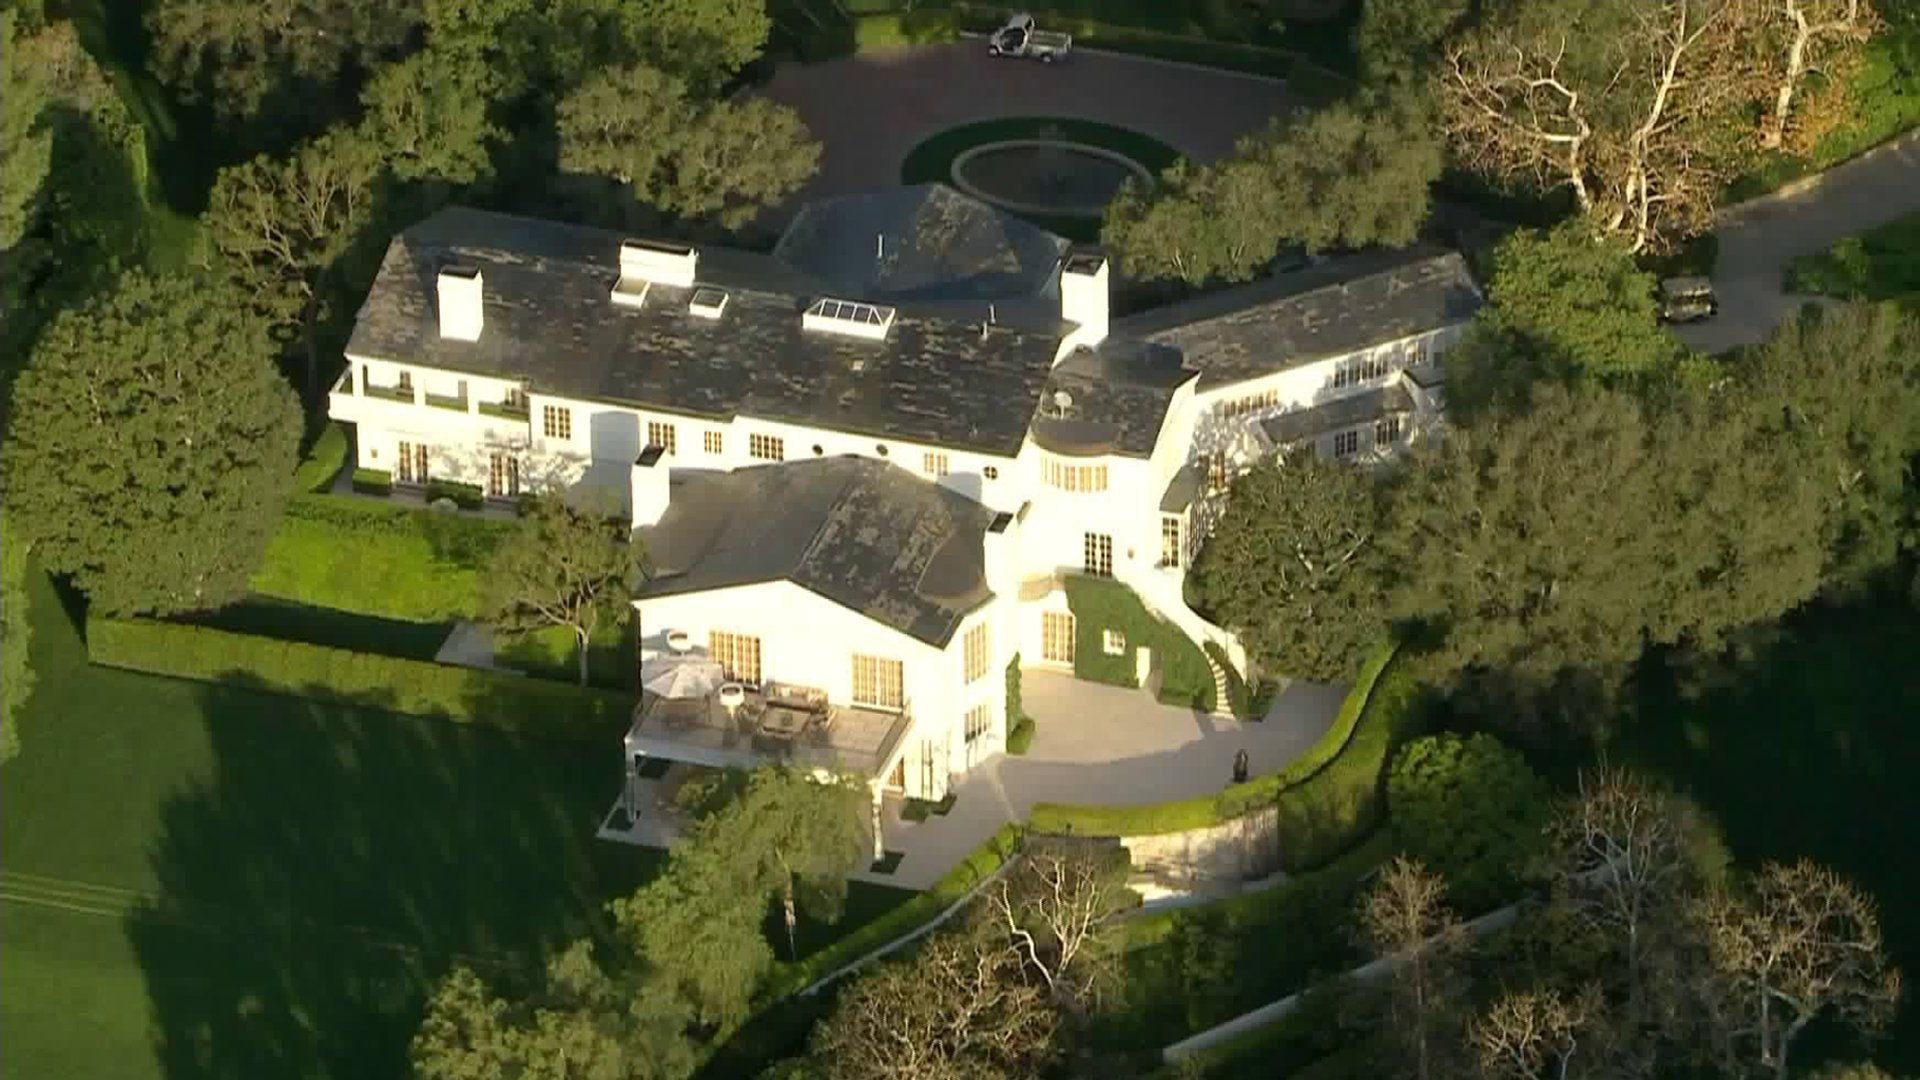 The main home on the property Jeff Bezos acquired from media mogul David Geffen for a record $165 million is seen on Feb. 13, 2020. (Credit: KTLA)